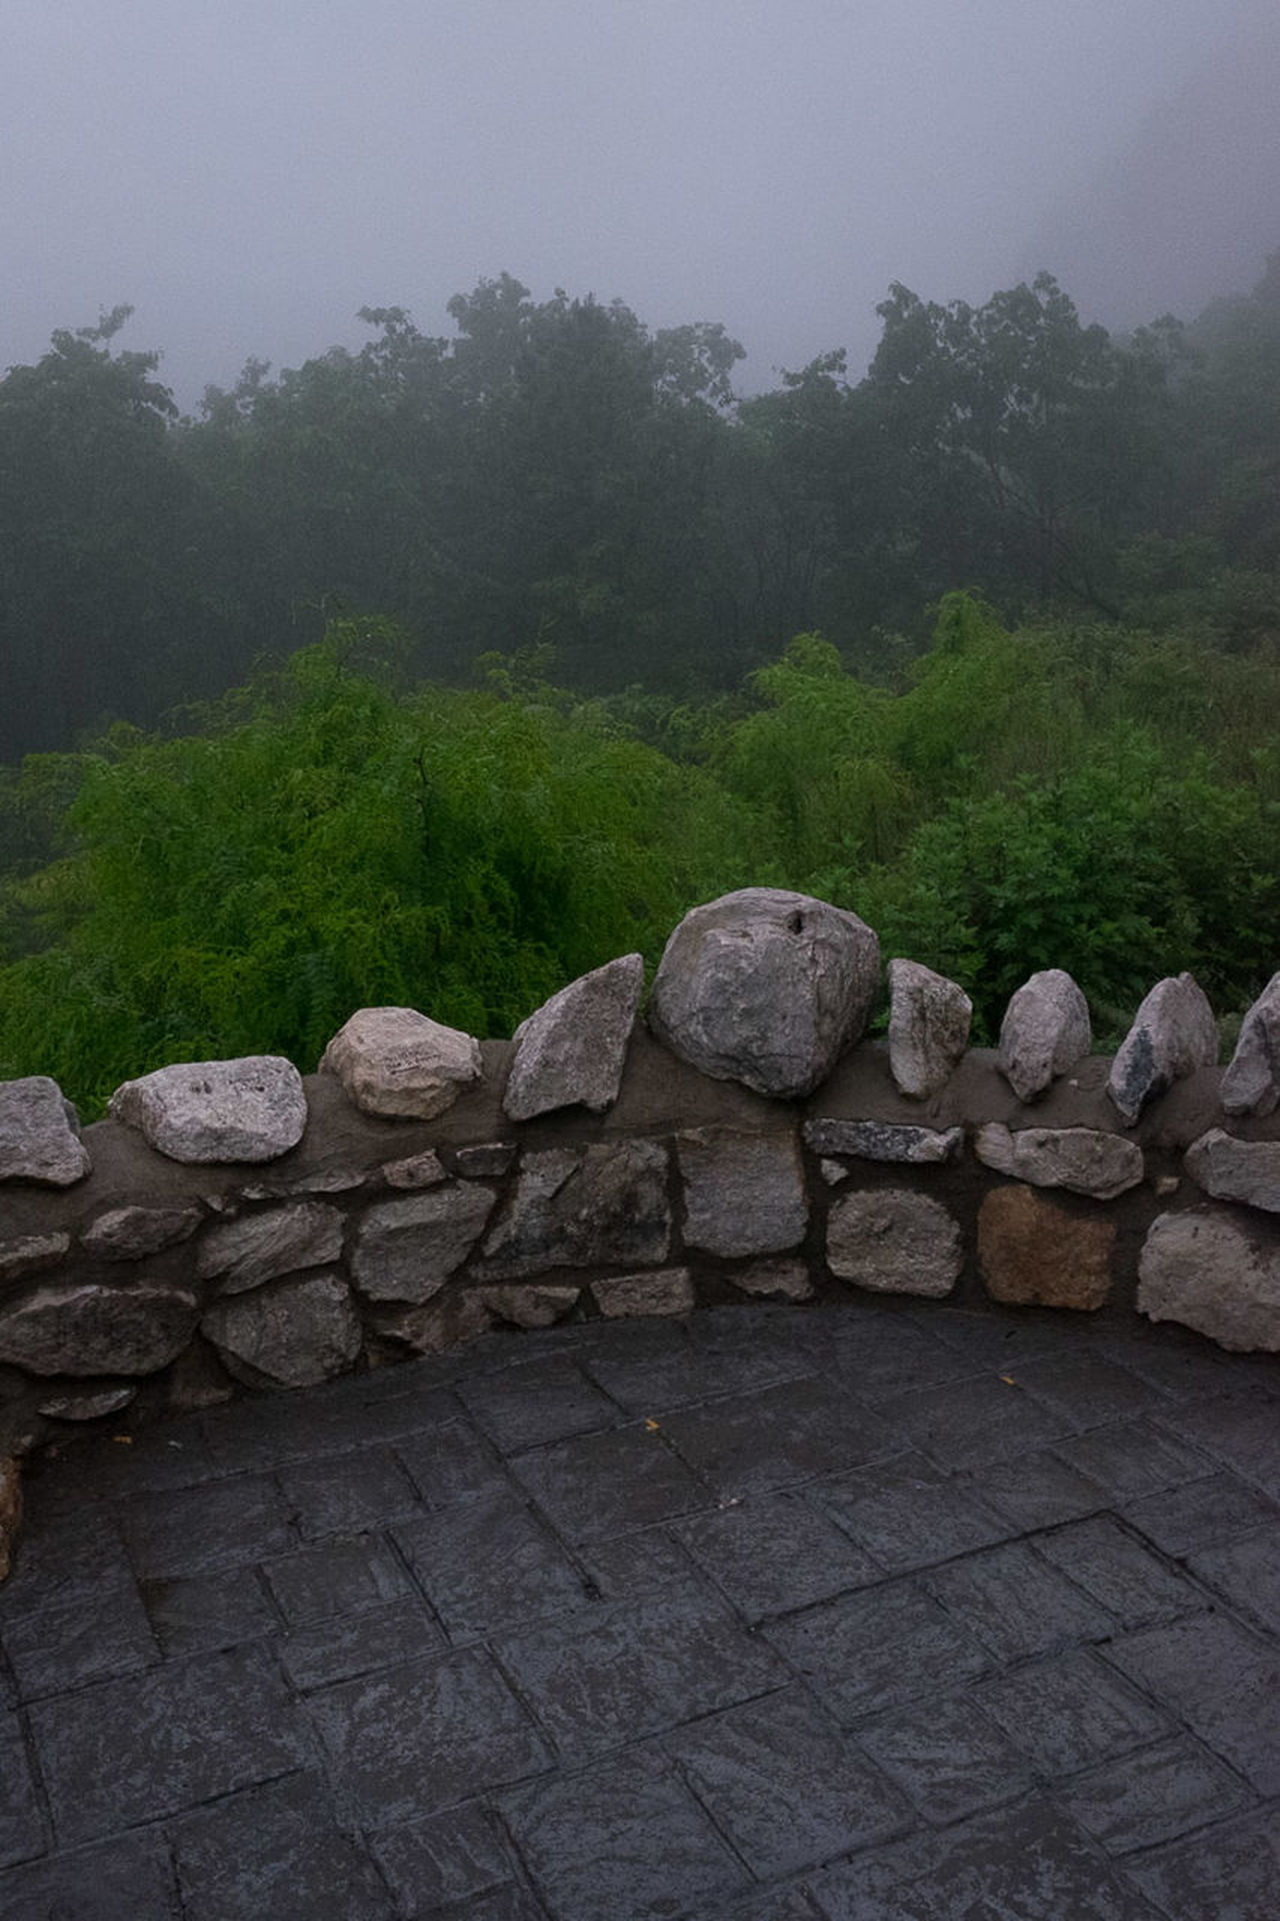 Foggy Lookout Architecture Beauty In Nature Calm Day Dragons Faces In Places Foggy Foggy Morning Growth Is That All There Is La Landscape Look Man And Nature Nature No People Outdoors Rock Scenics Sky Tourist Attraction  Tranquil Scene Tranquility Tree Vintage